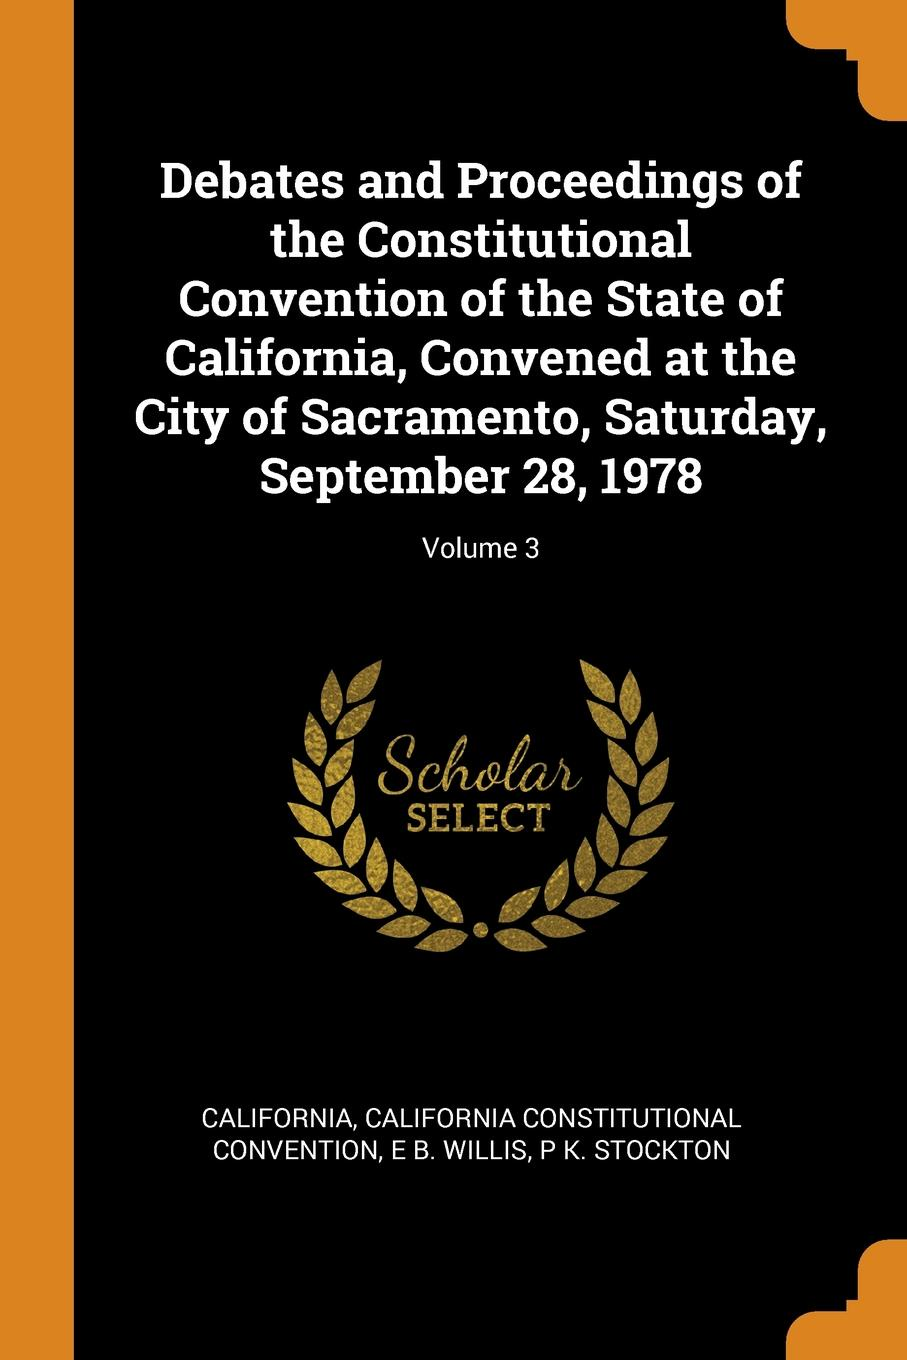 Debates and Proceedings of the Constitutional Convention of the State of California, Convened at the City of Sacramento, Saturday, September 28, 1978; Volume 3. California, California Constitutional Convention, E B. Willis